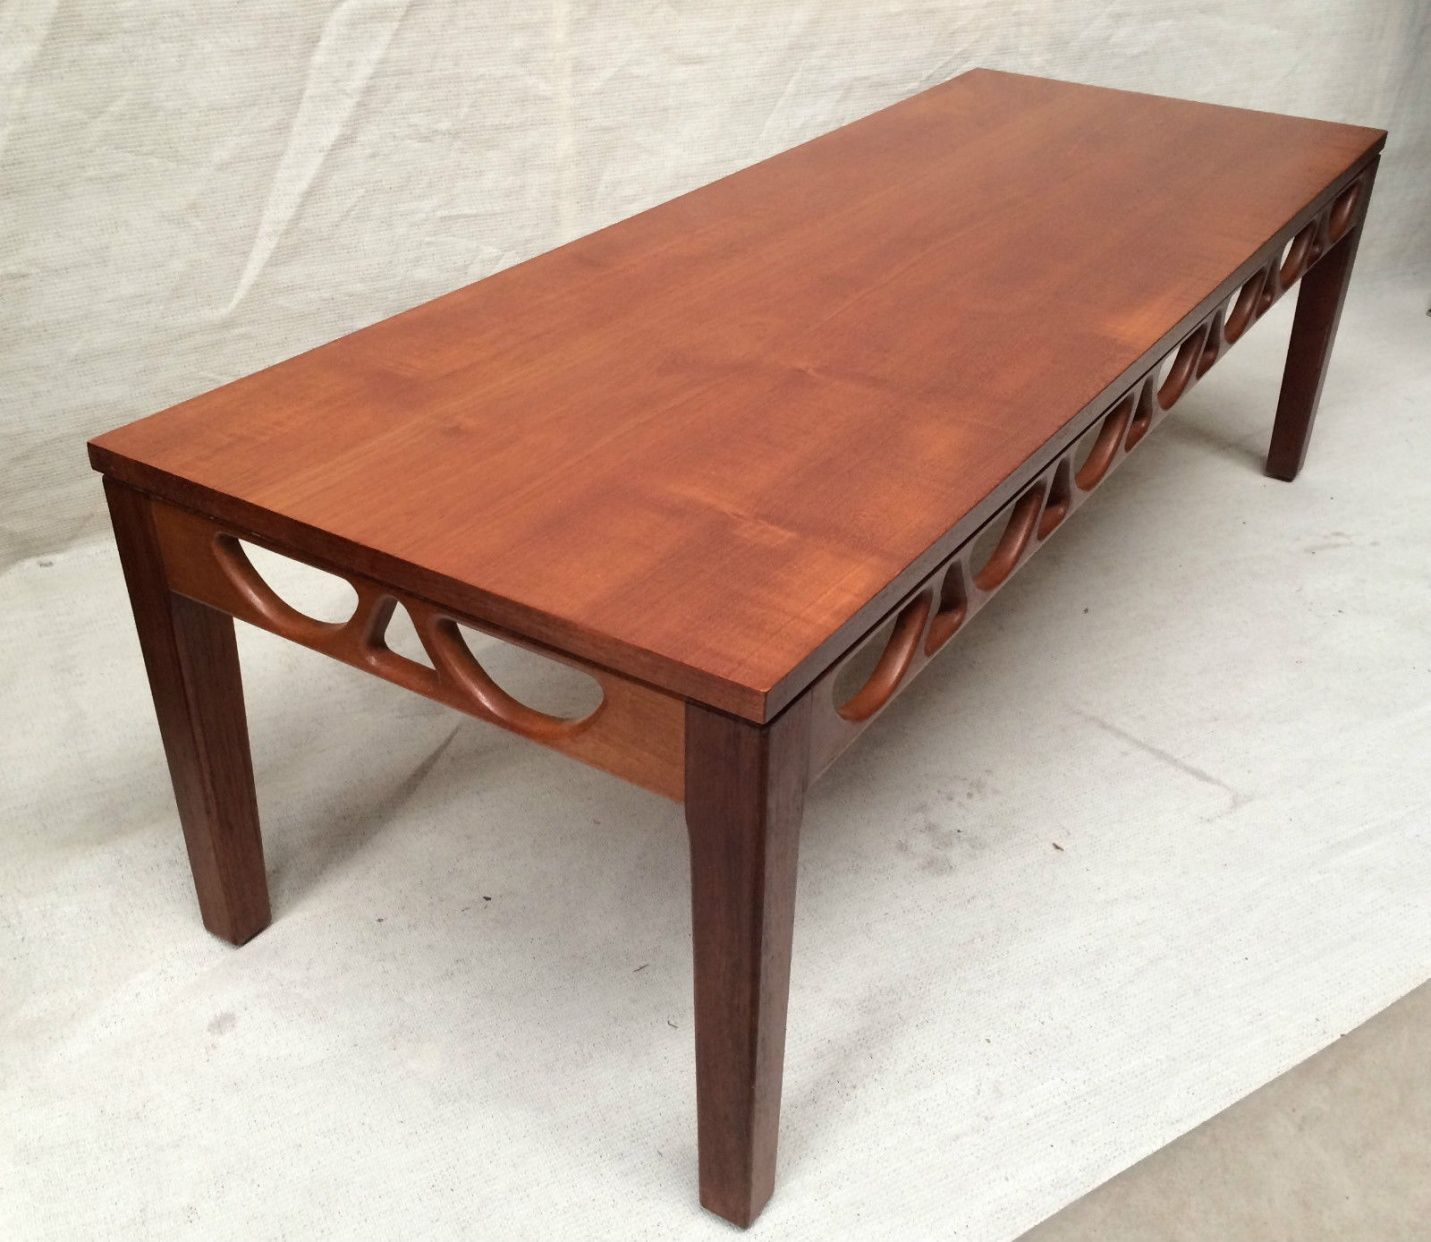 Mid Century Table Small Coffee Table 60s: Stunning Genuine 60s AVALON TEAK COFFEE TABLE MID CENTURY